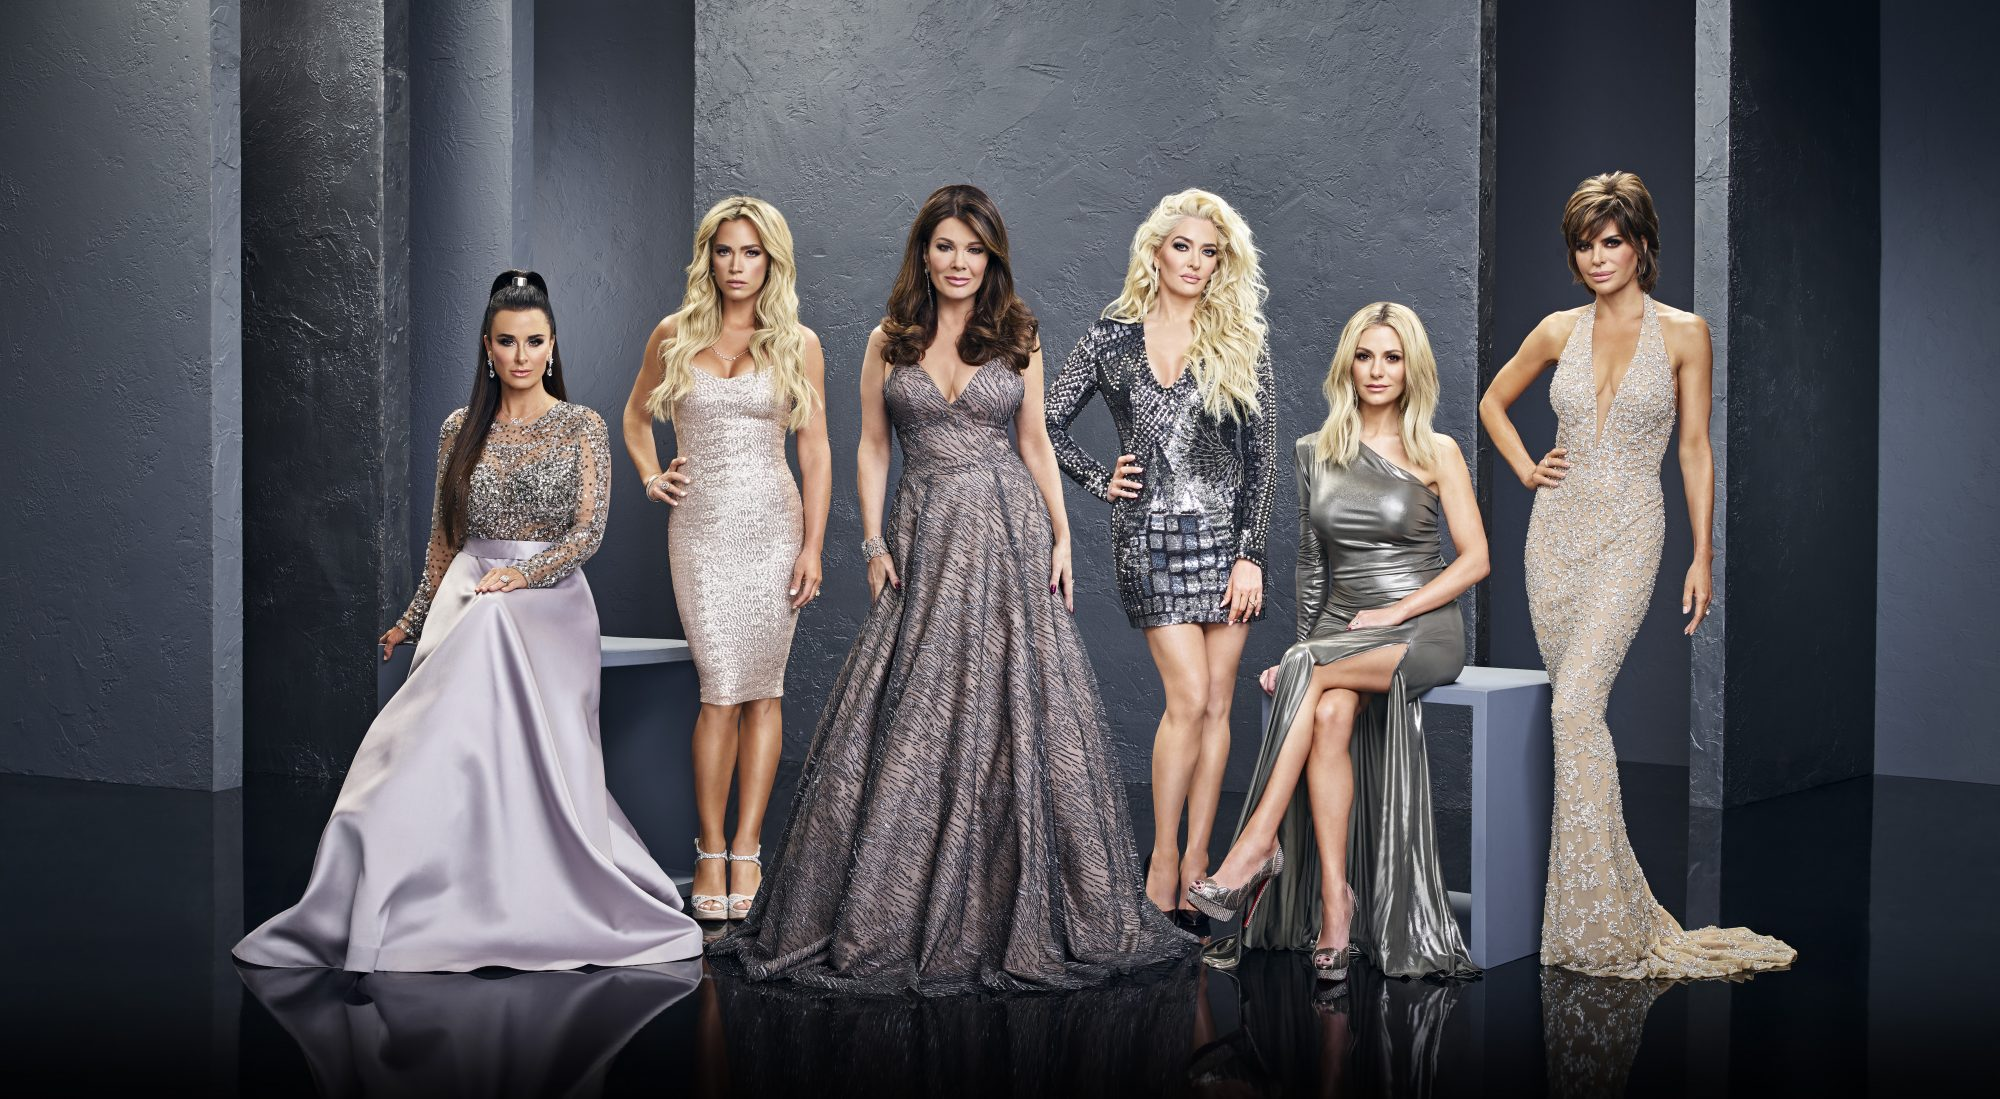 The Real Housewives of Beverly Hills - Season 8